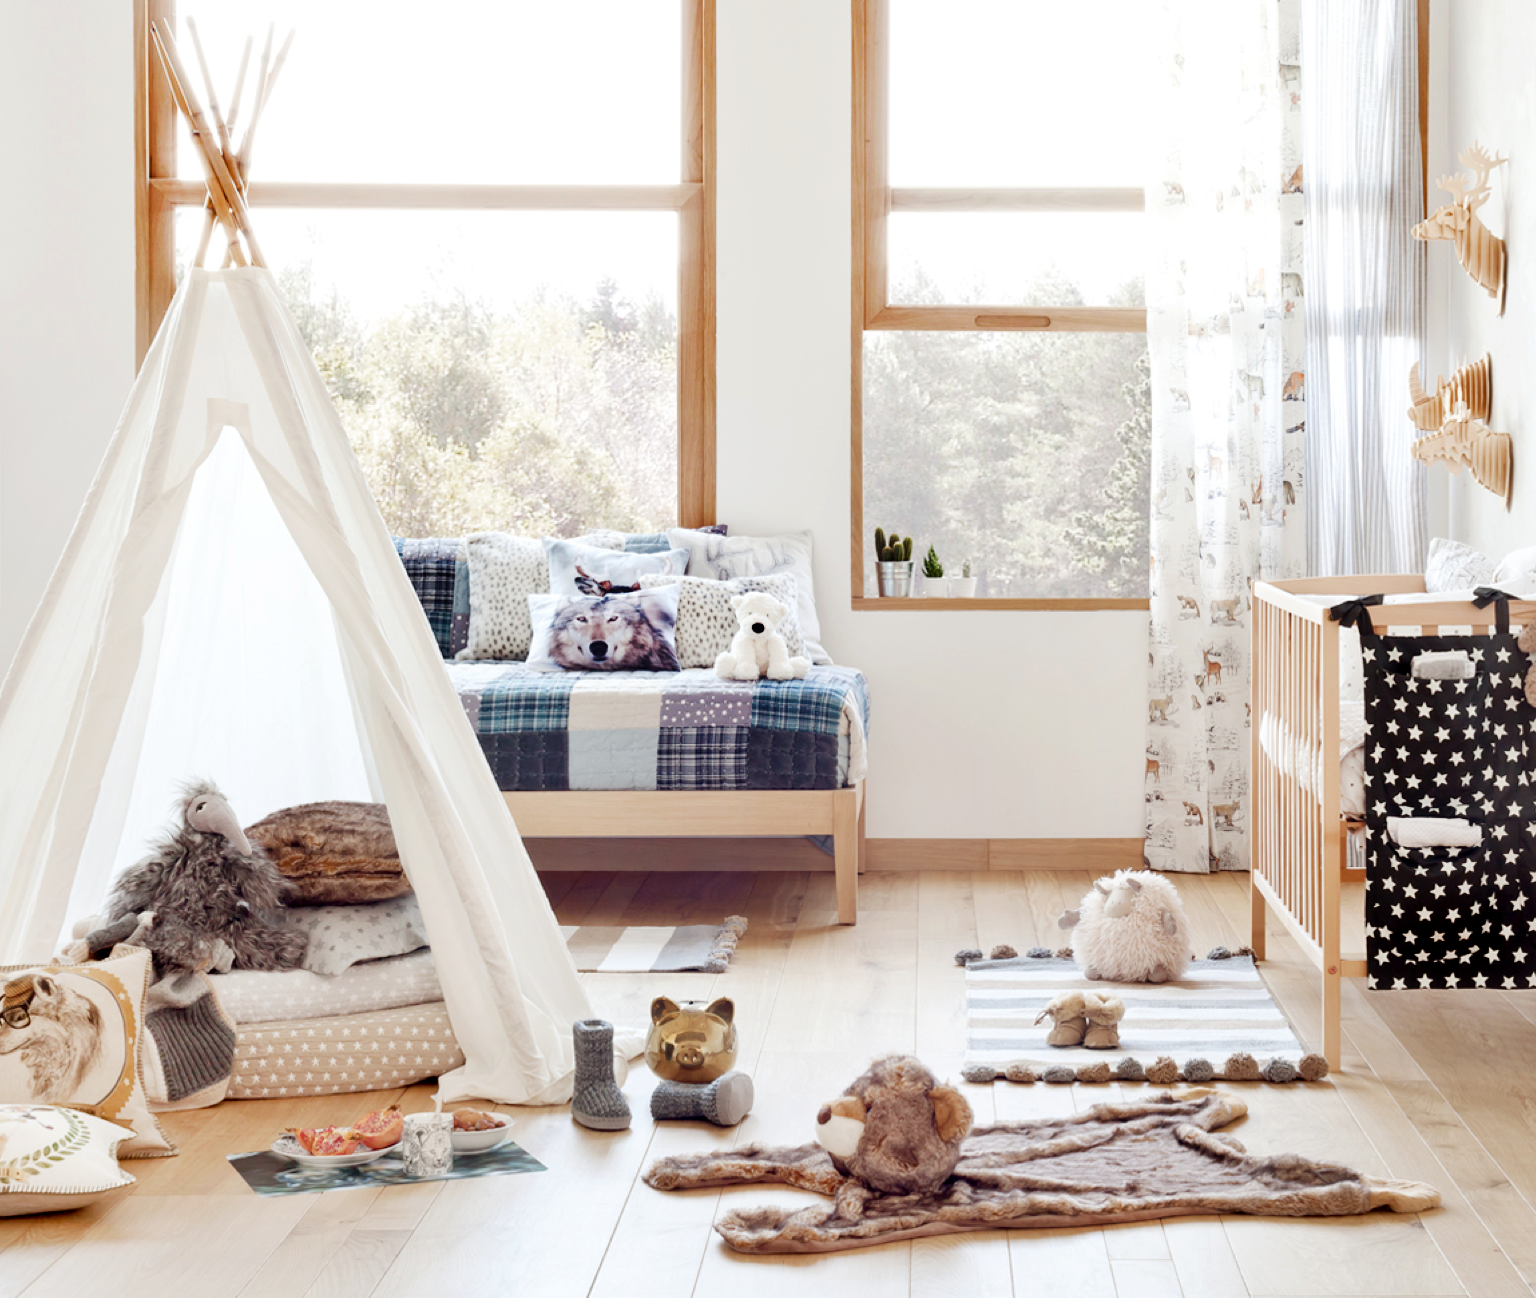 Awe Inspiring Chicdeco Blog Bring It Home Cabin Inspired Kids Room Download Free Architecture Designs Rallybritishbridgeorg